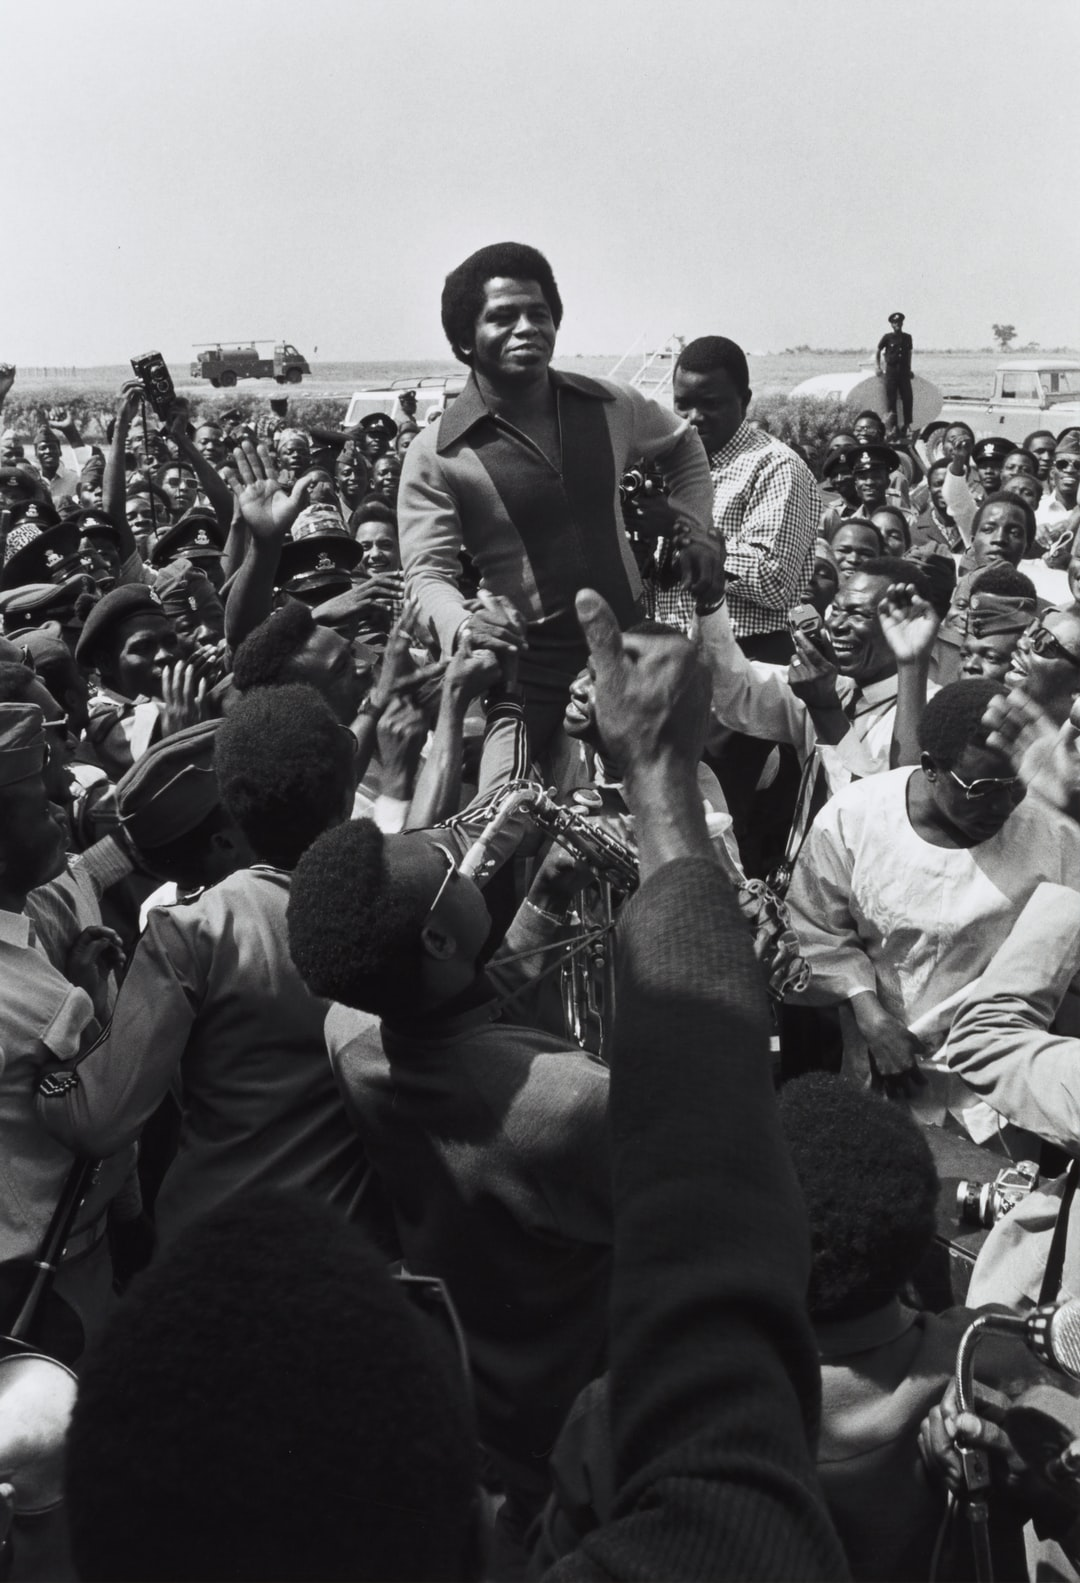 Singer James Brown being greeted by fans upon his arrival at Kaduna Airport, 1970